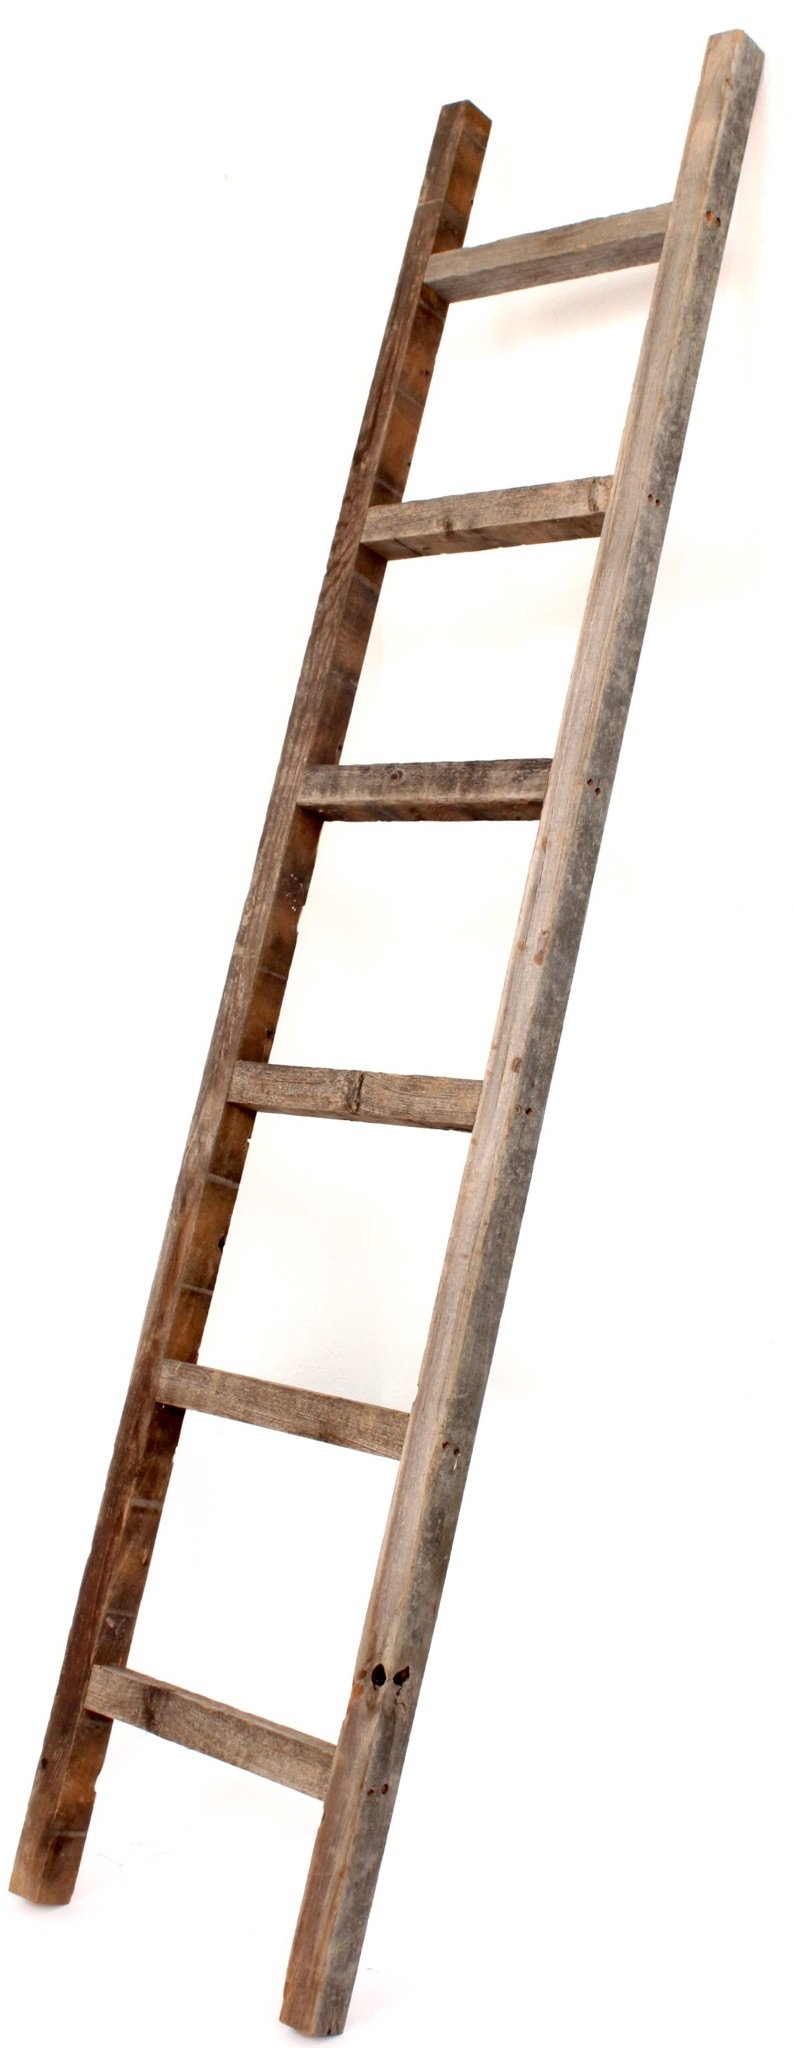 BarnwoodUSA Rustic Farmhouse Decorative Ladder - Our 6 ft Ladder can be Mounted Horizontally or Vertically and is Crafted from 100% Recycled and Reclaimed Wood | No Assembly Required | Weathered Gray by BarnwoodUSA